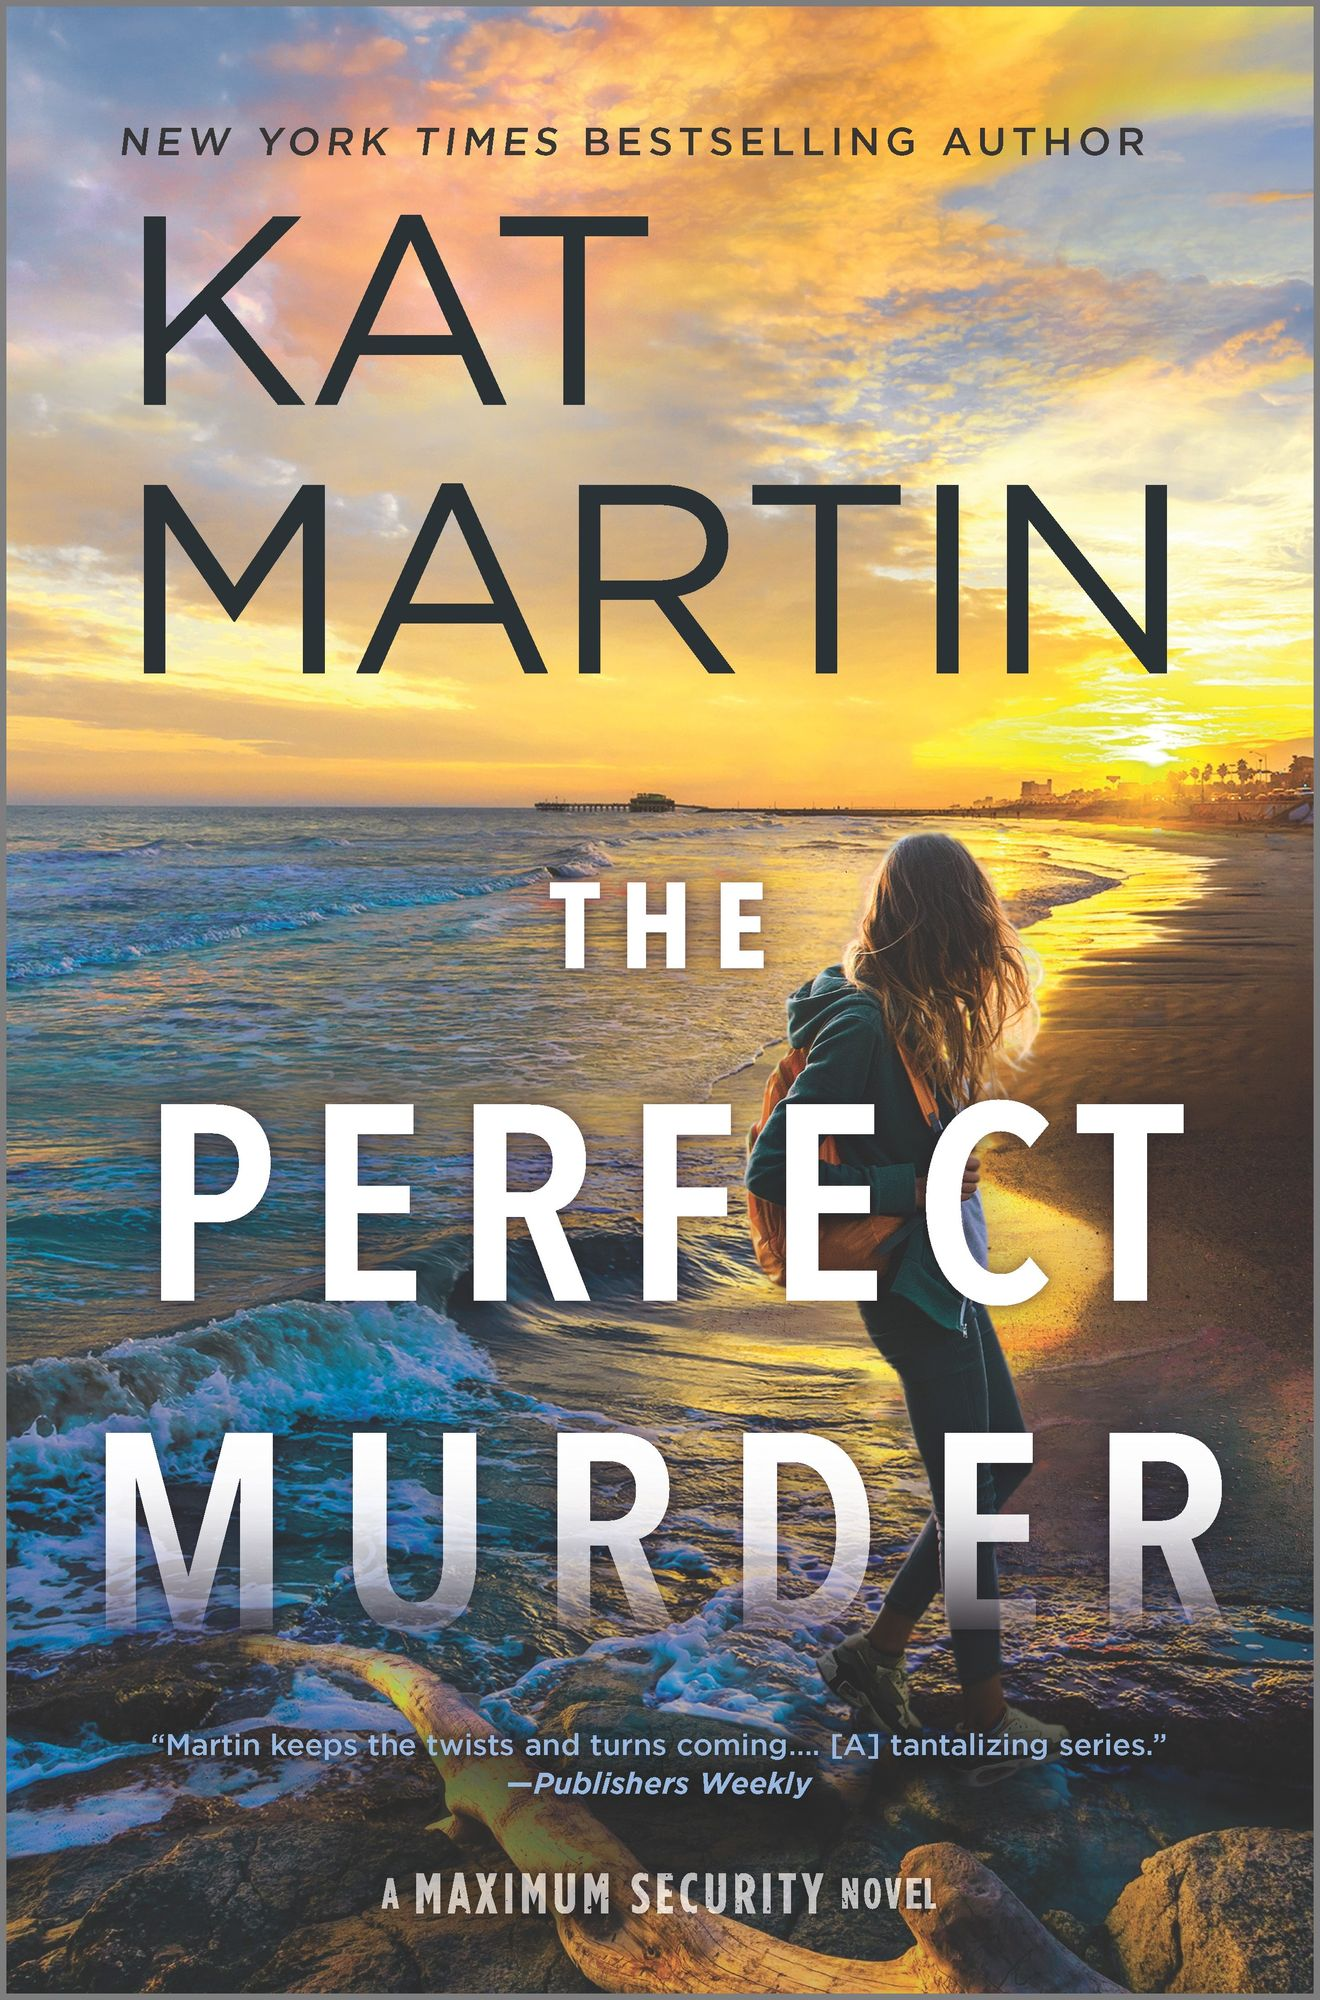 The Perfect Murder by Kat Martin